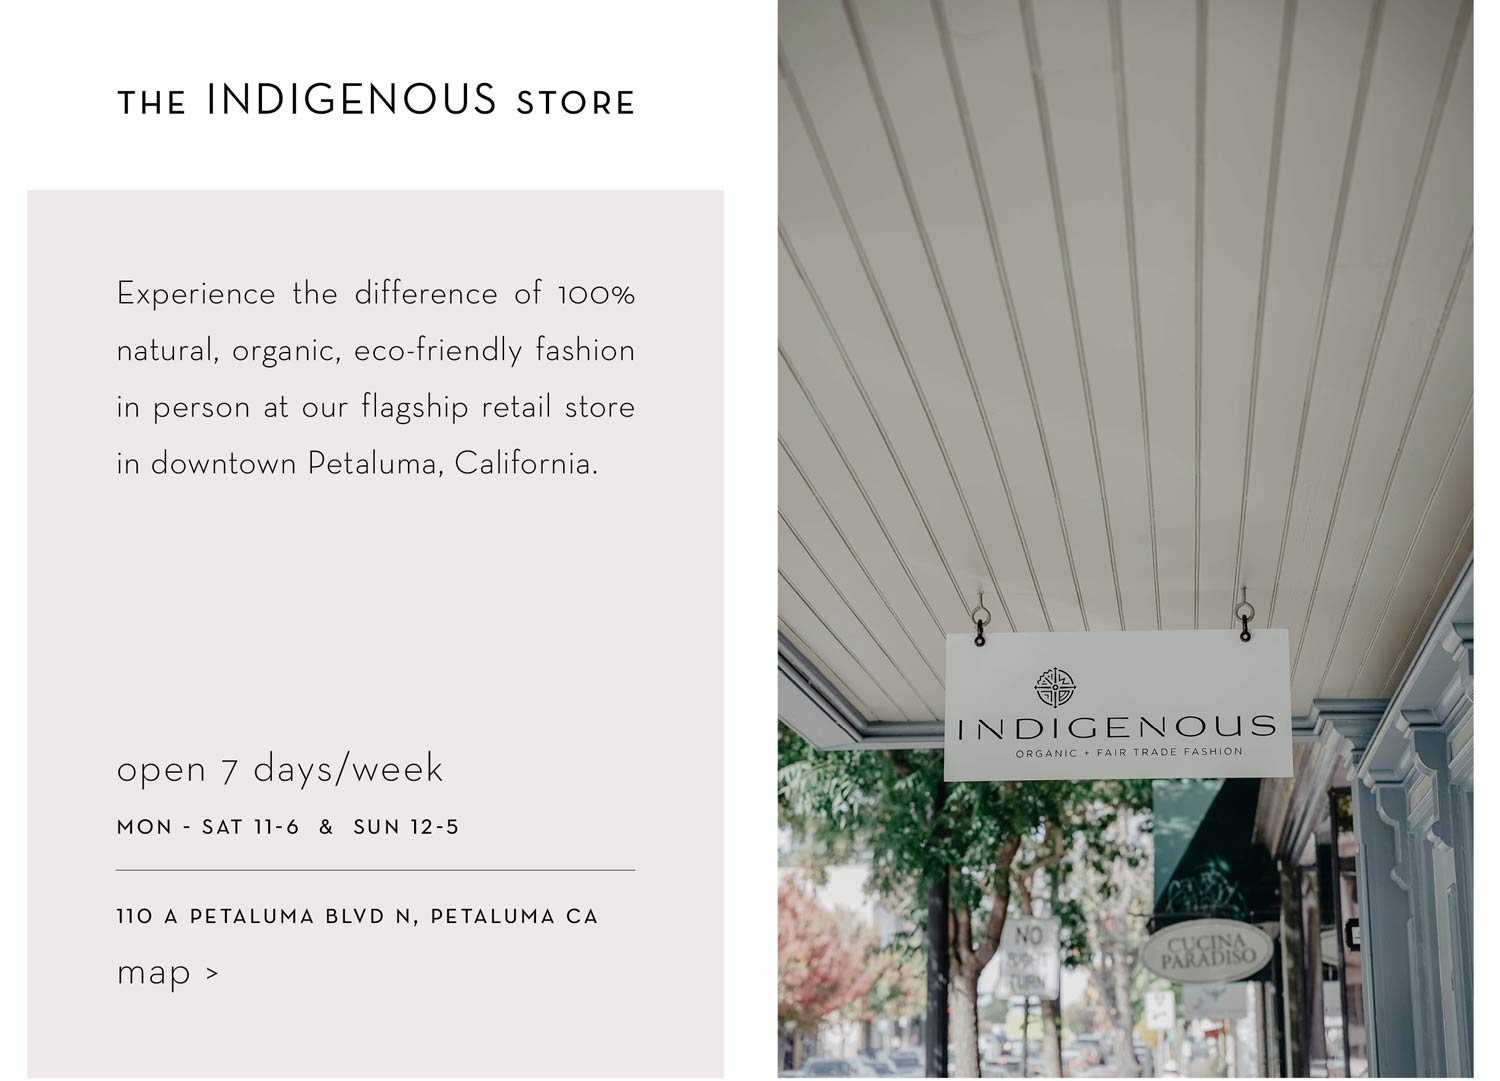 Shop ethical fashion clothing from Indigenous in Petaluma California